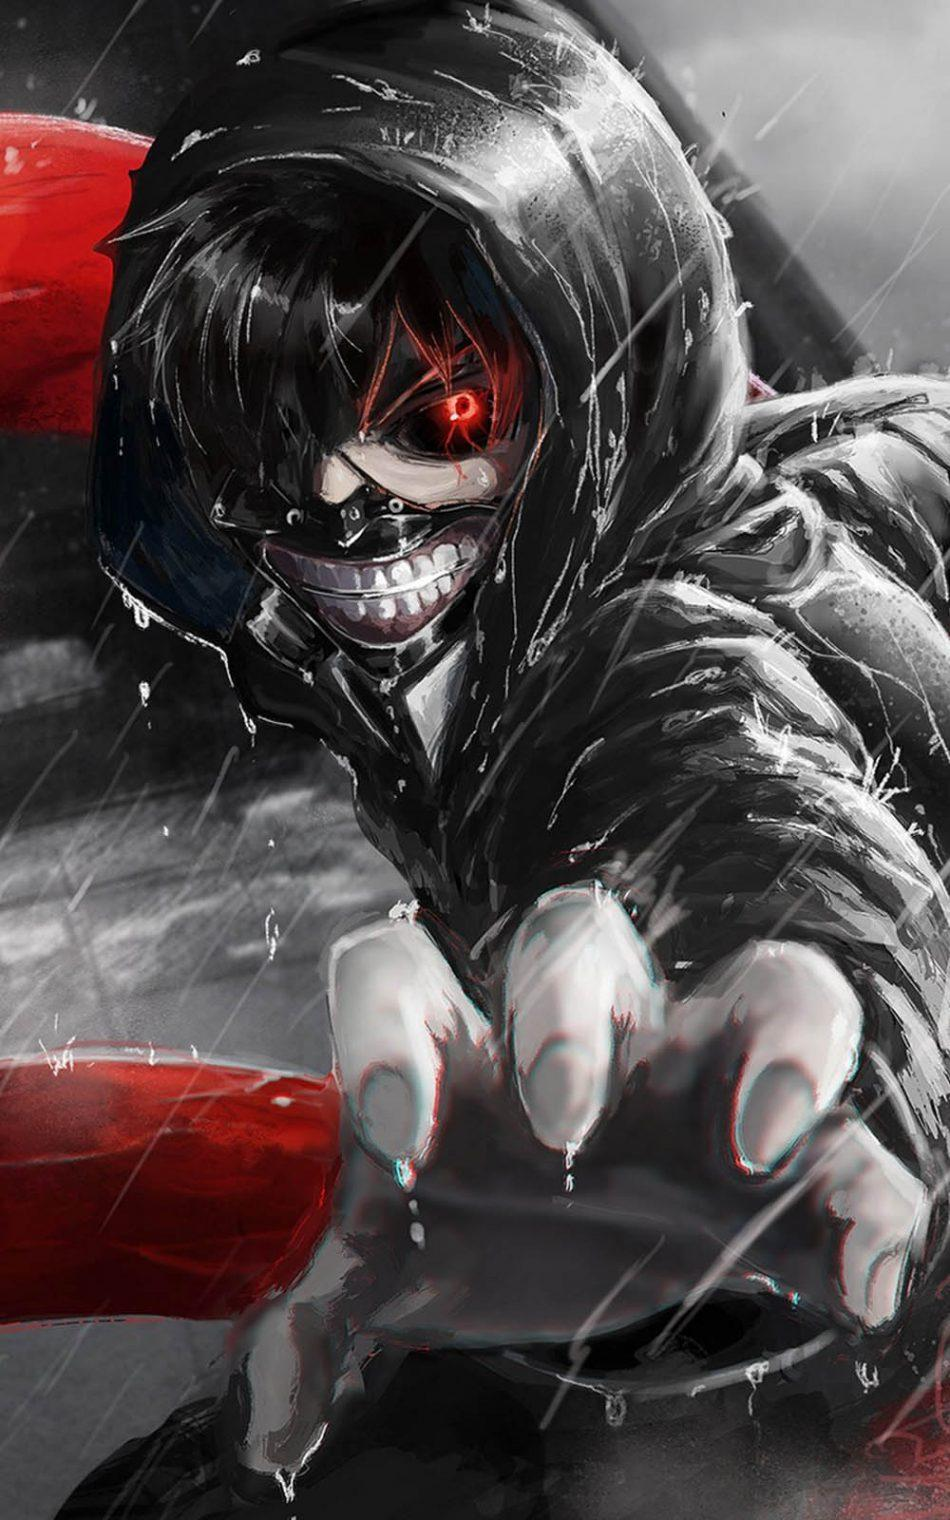 Anime HD Tokyo Ghoul Android Wallpapers - Wallpaper Cave